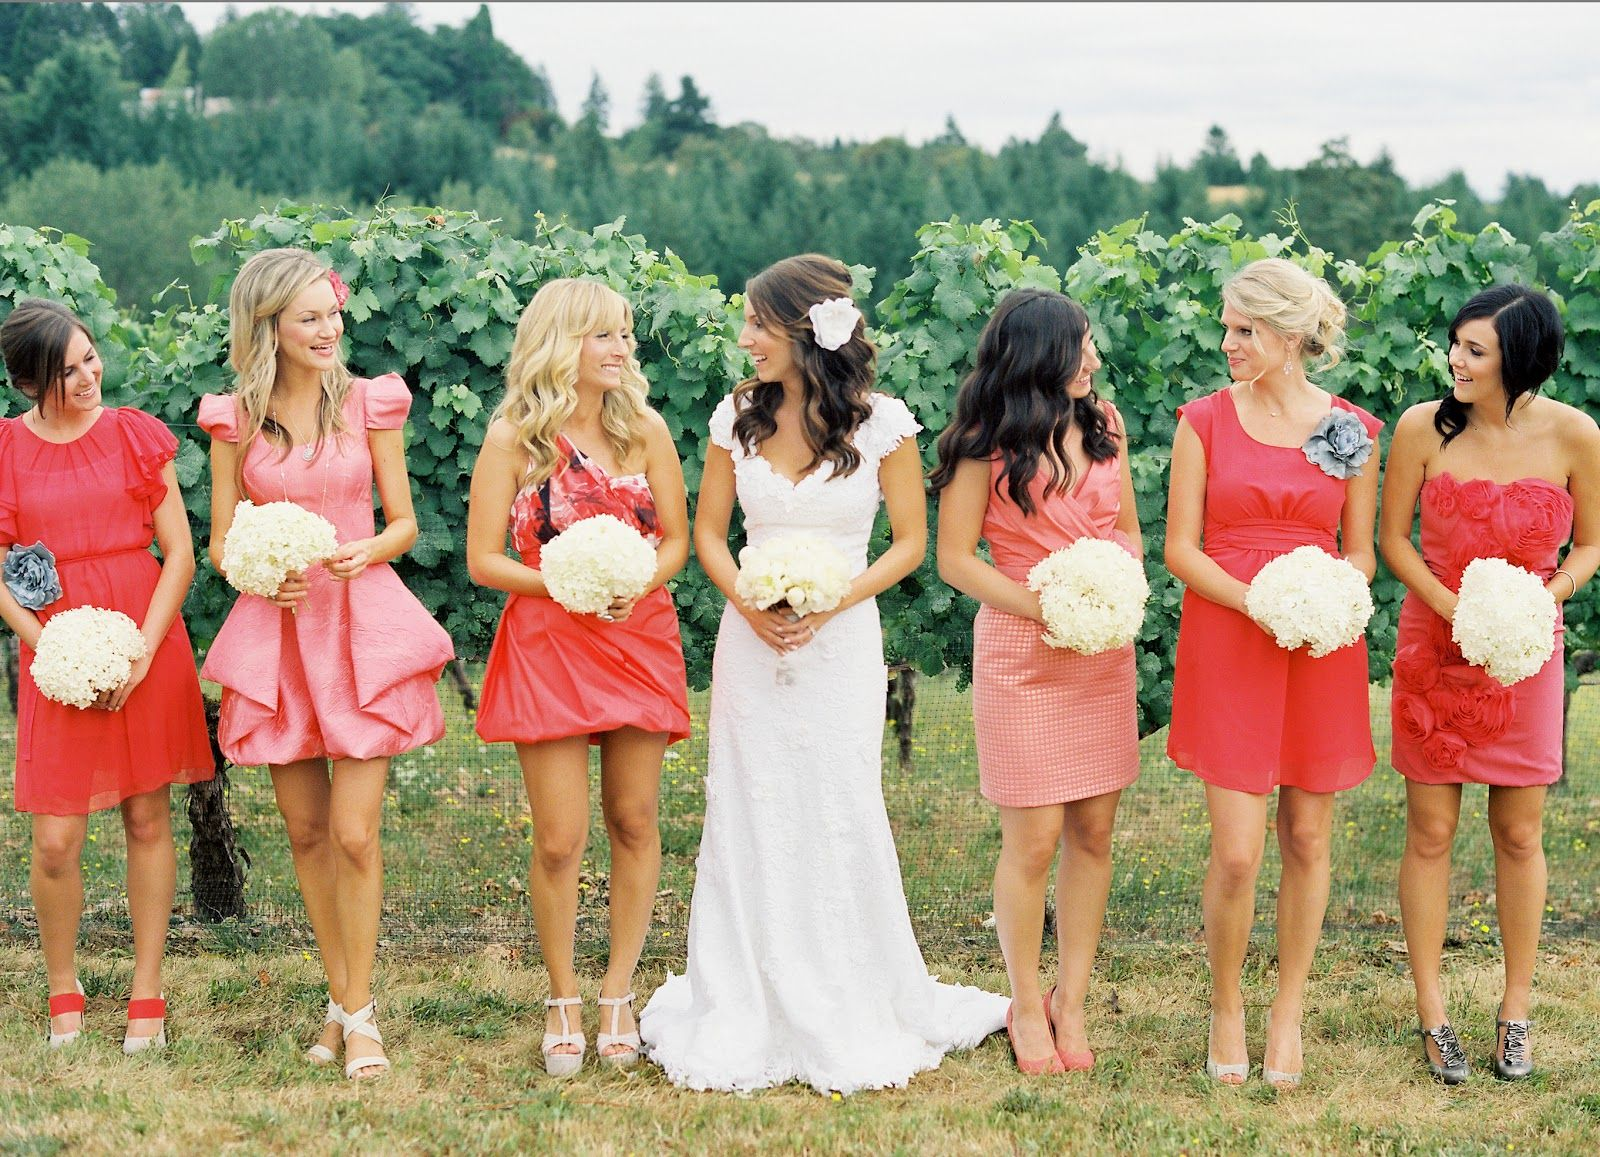 Wedding dress bridesmaids pinterest wedding wedding and